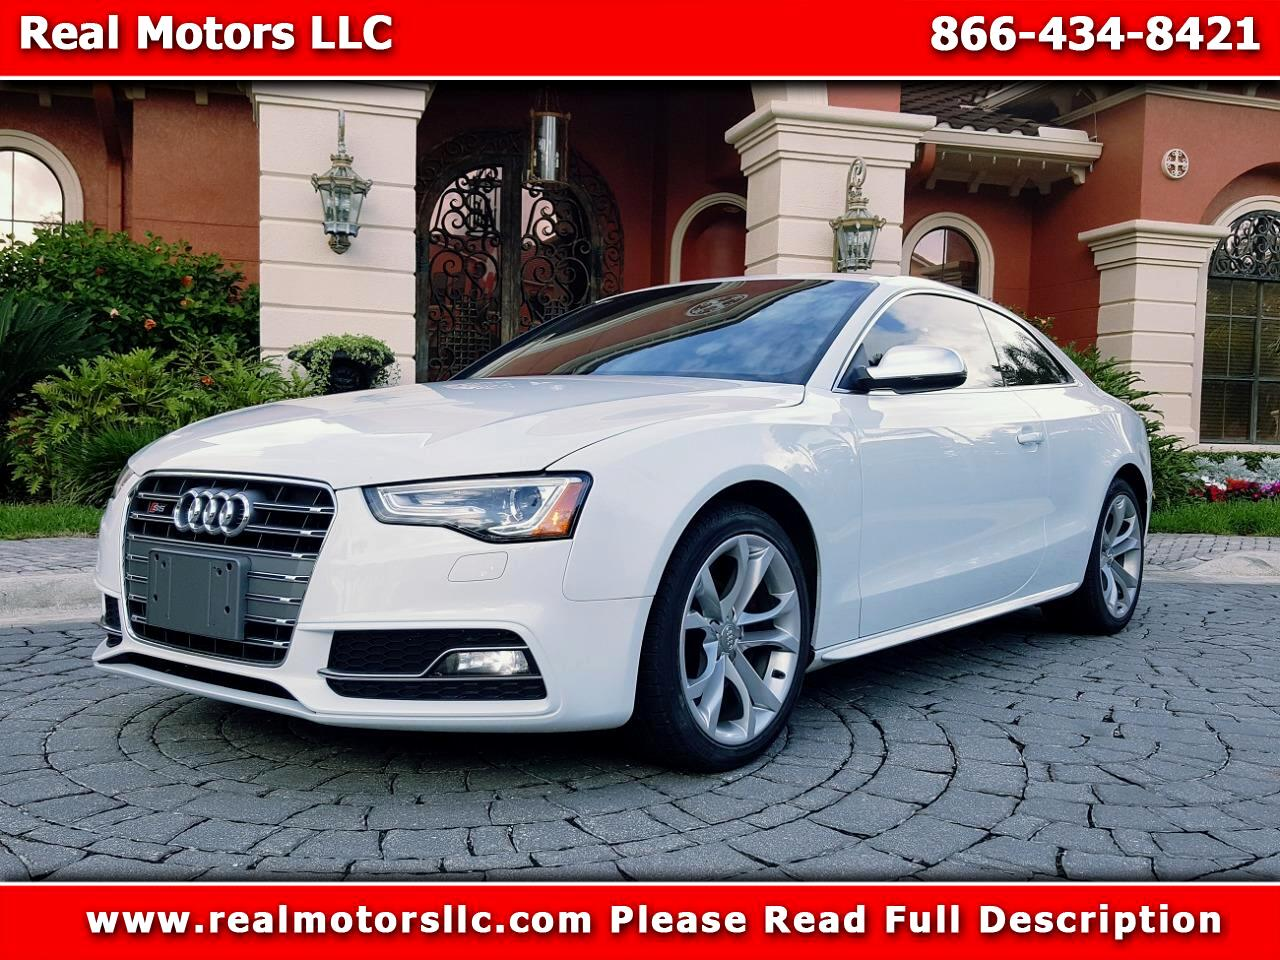 2017 Audi S5 Premium Plus, Technology, Sports Differential